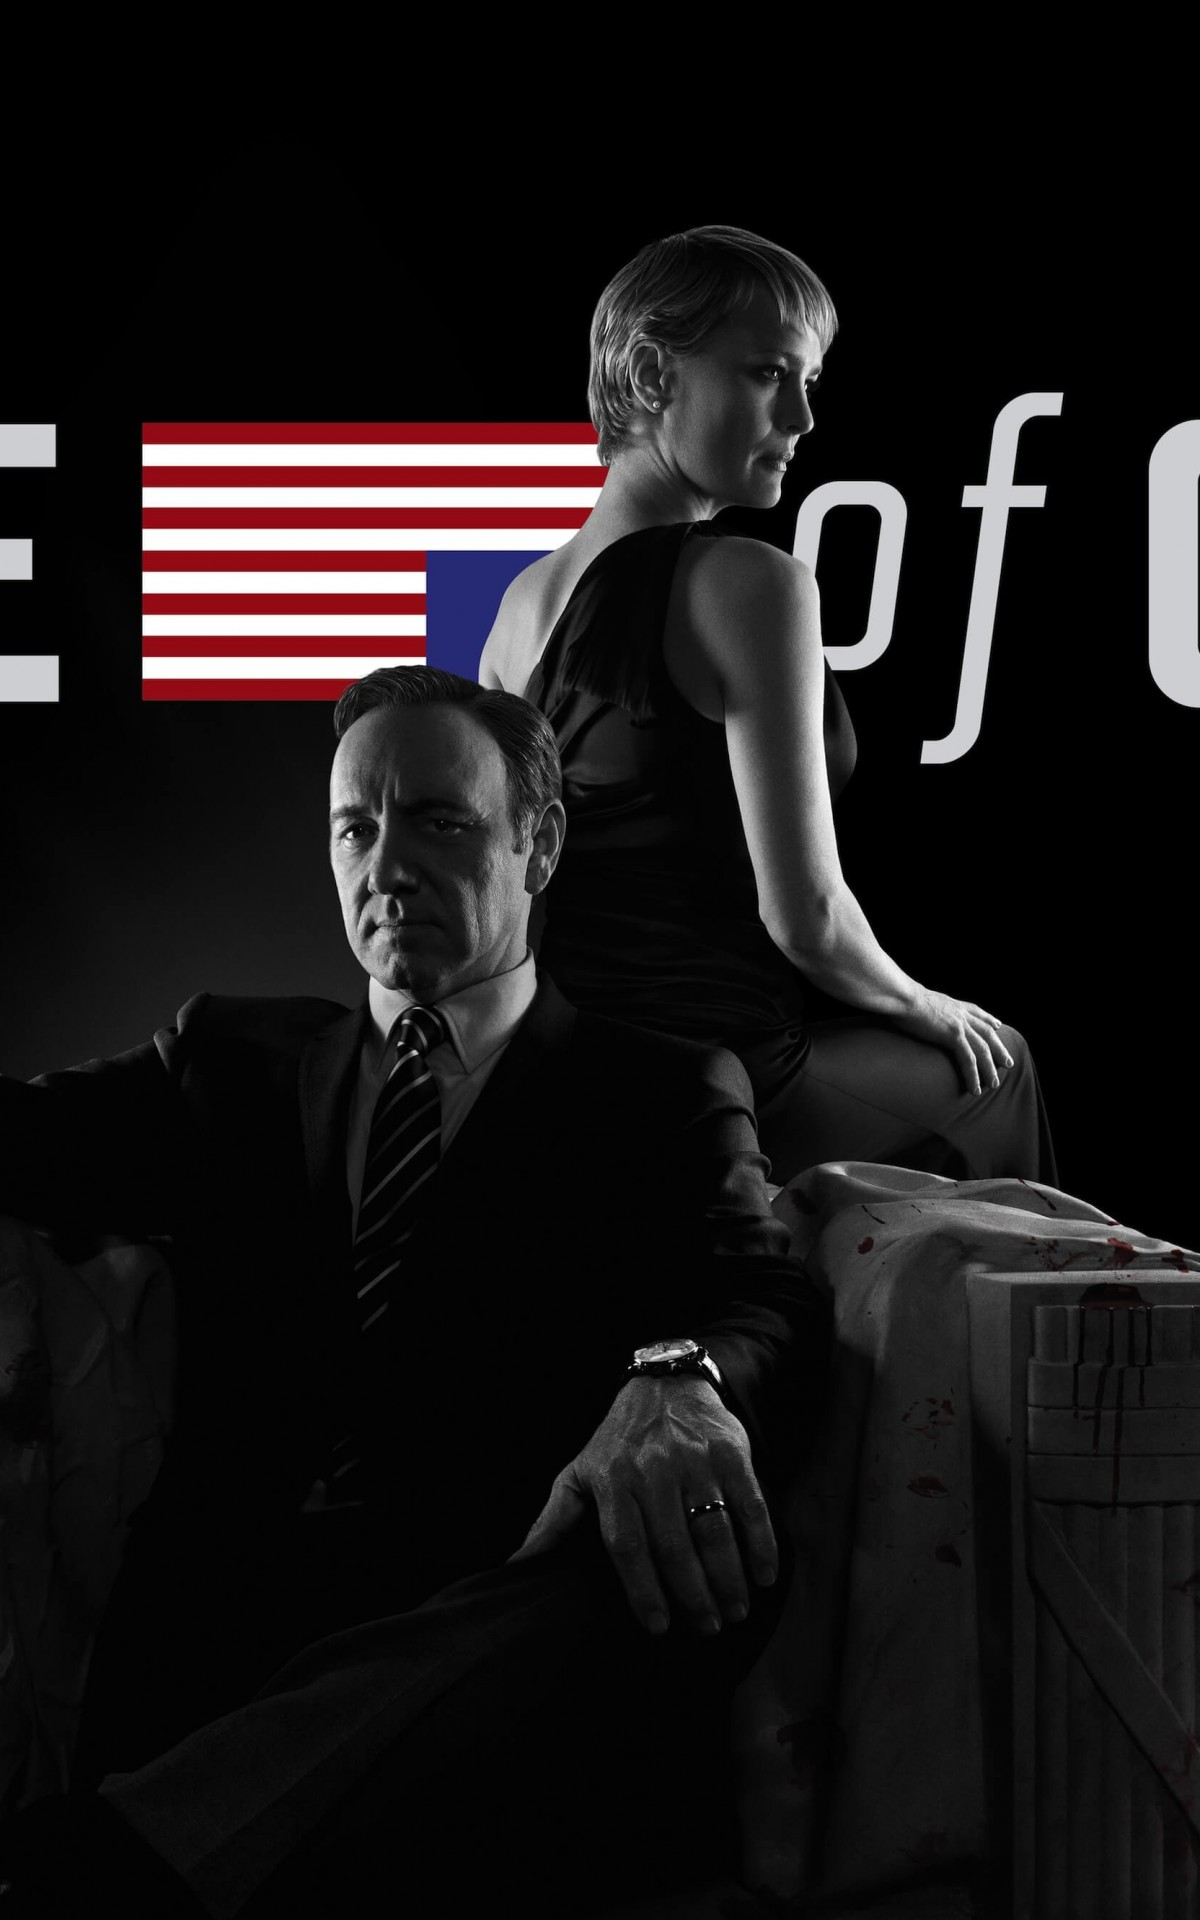 House of Cards - Black & White Wallpaper for Amazon Kindle Fire HDX